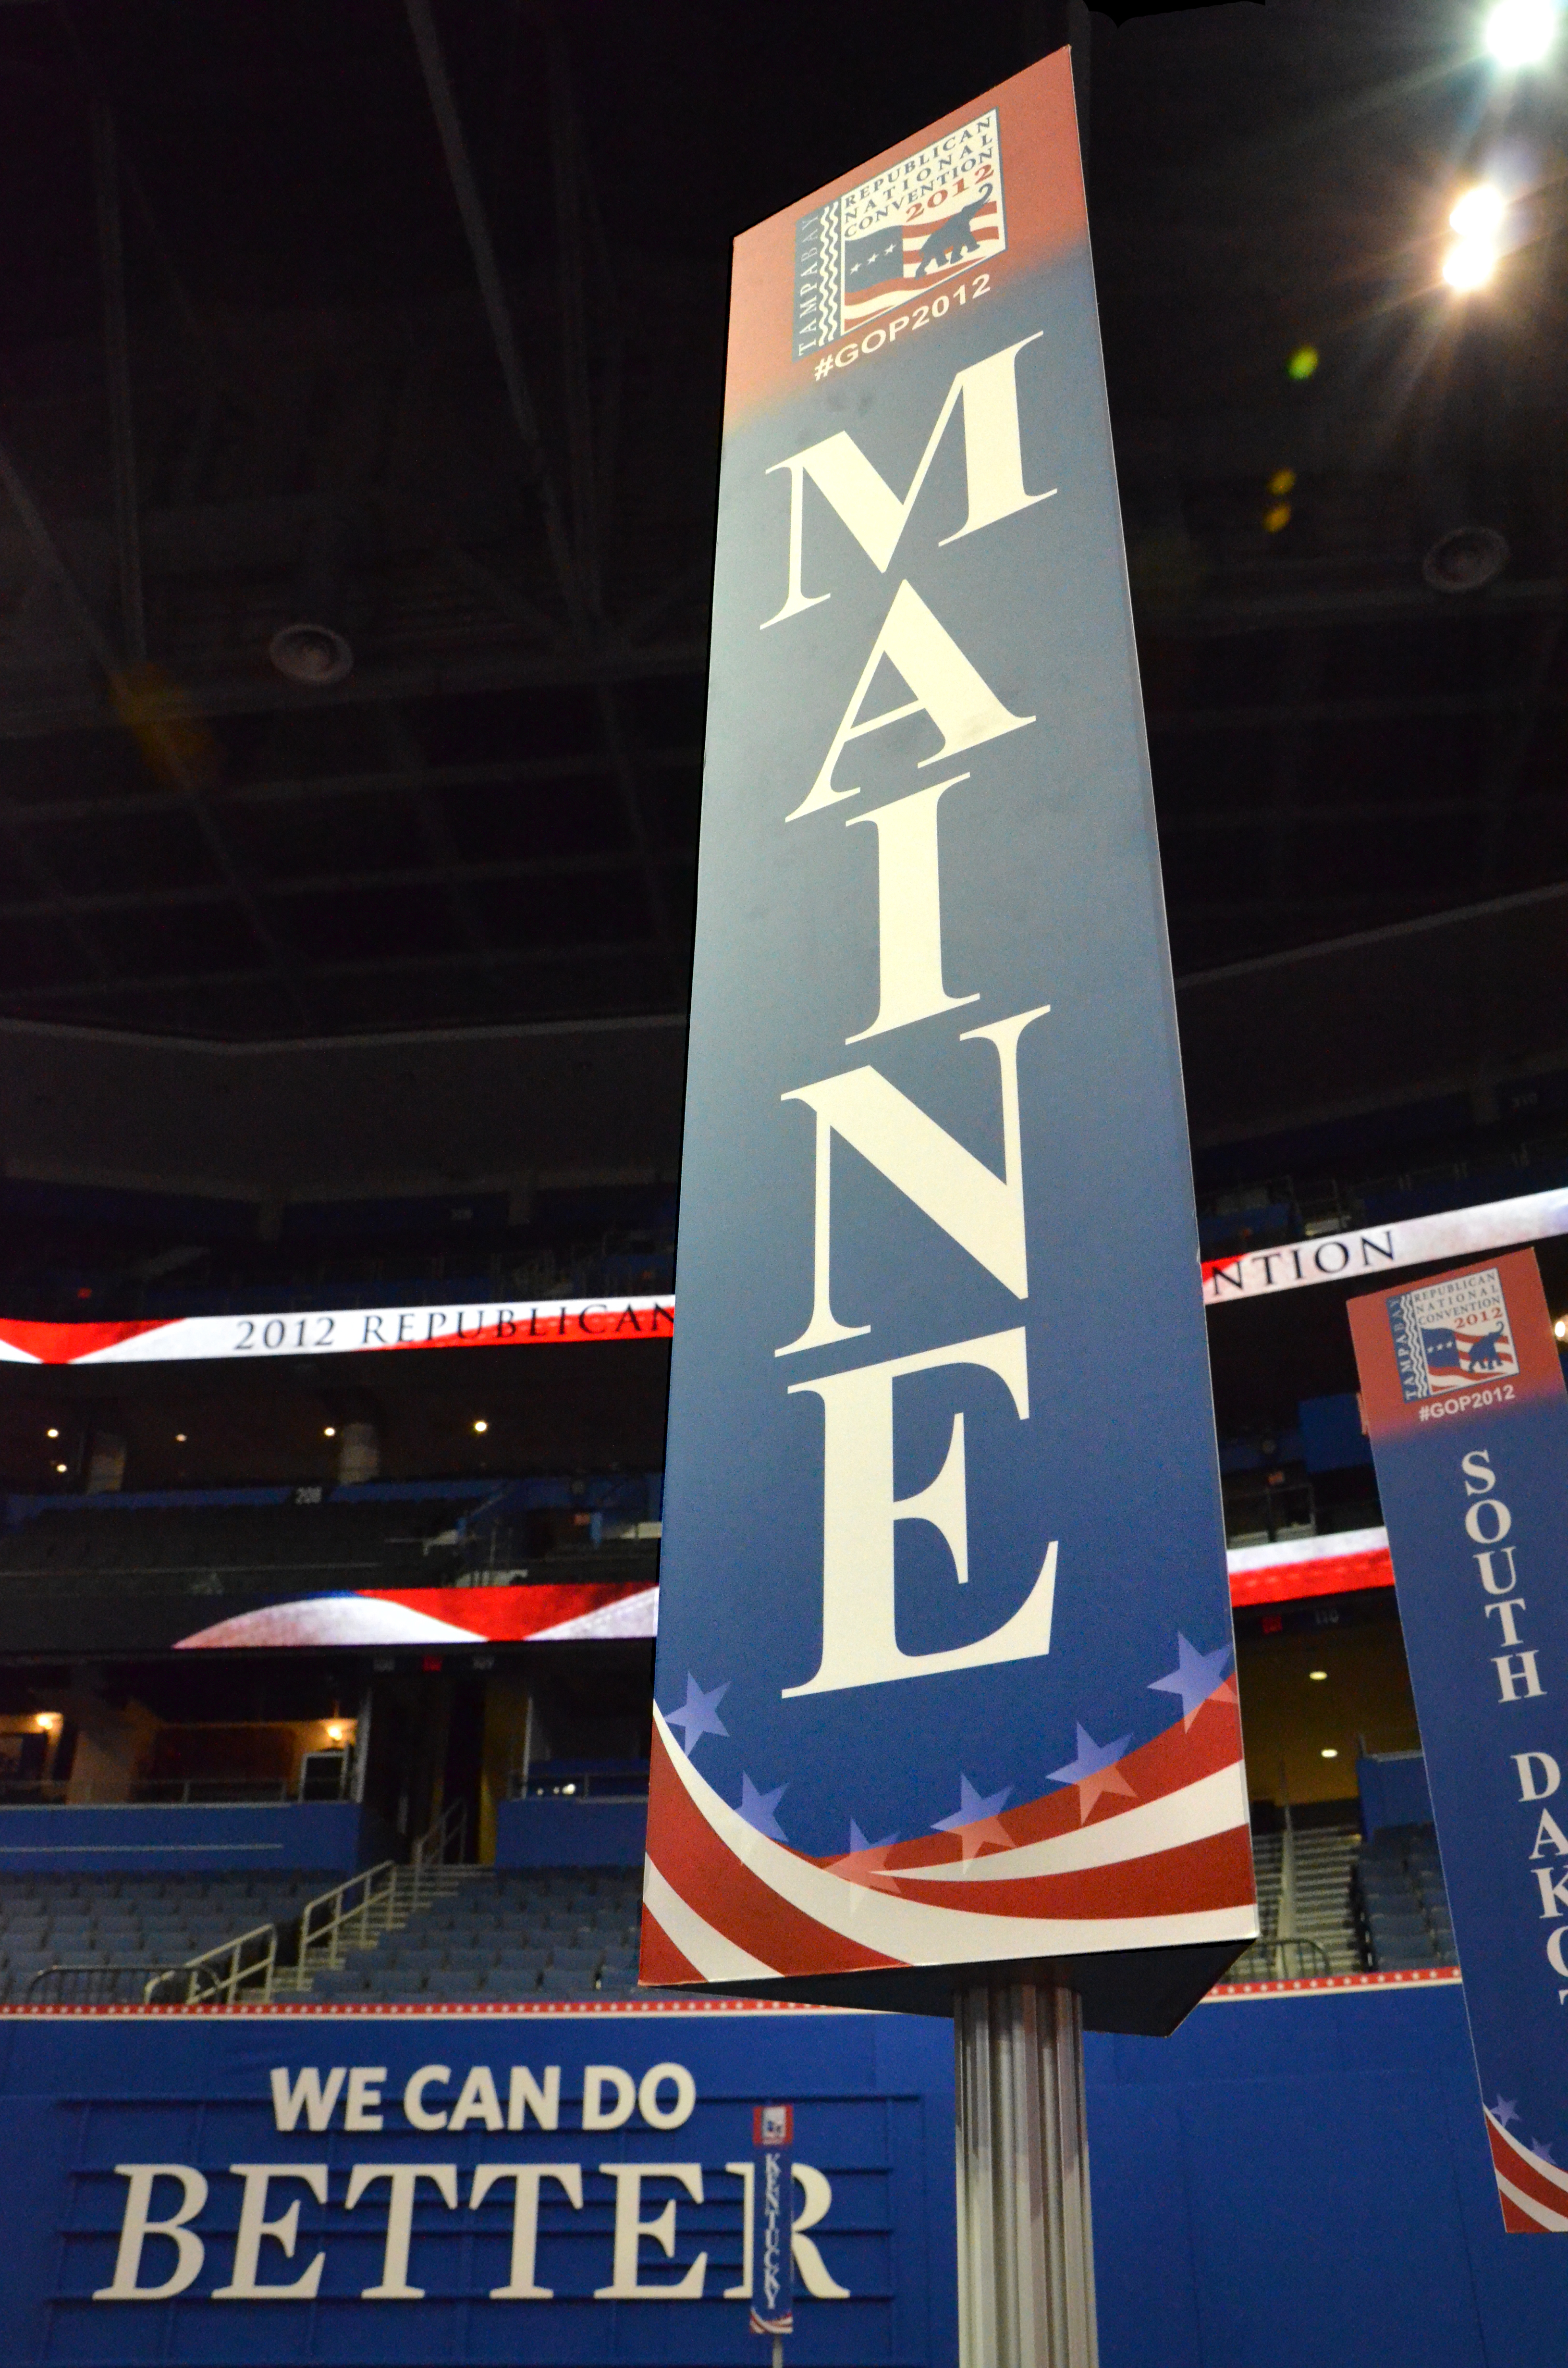 Maine's Willis candidate for National Republican Committee chairmanship